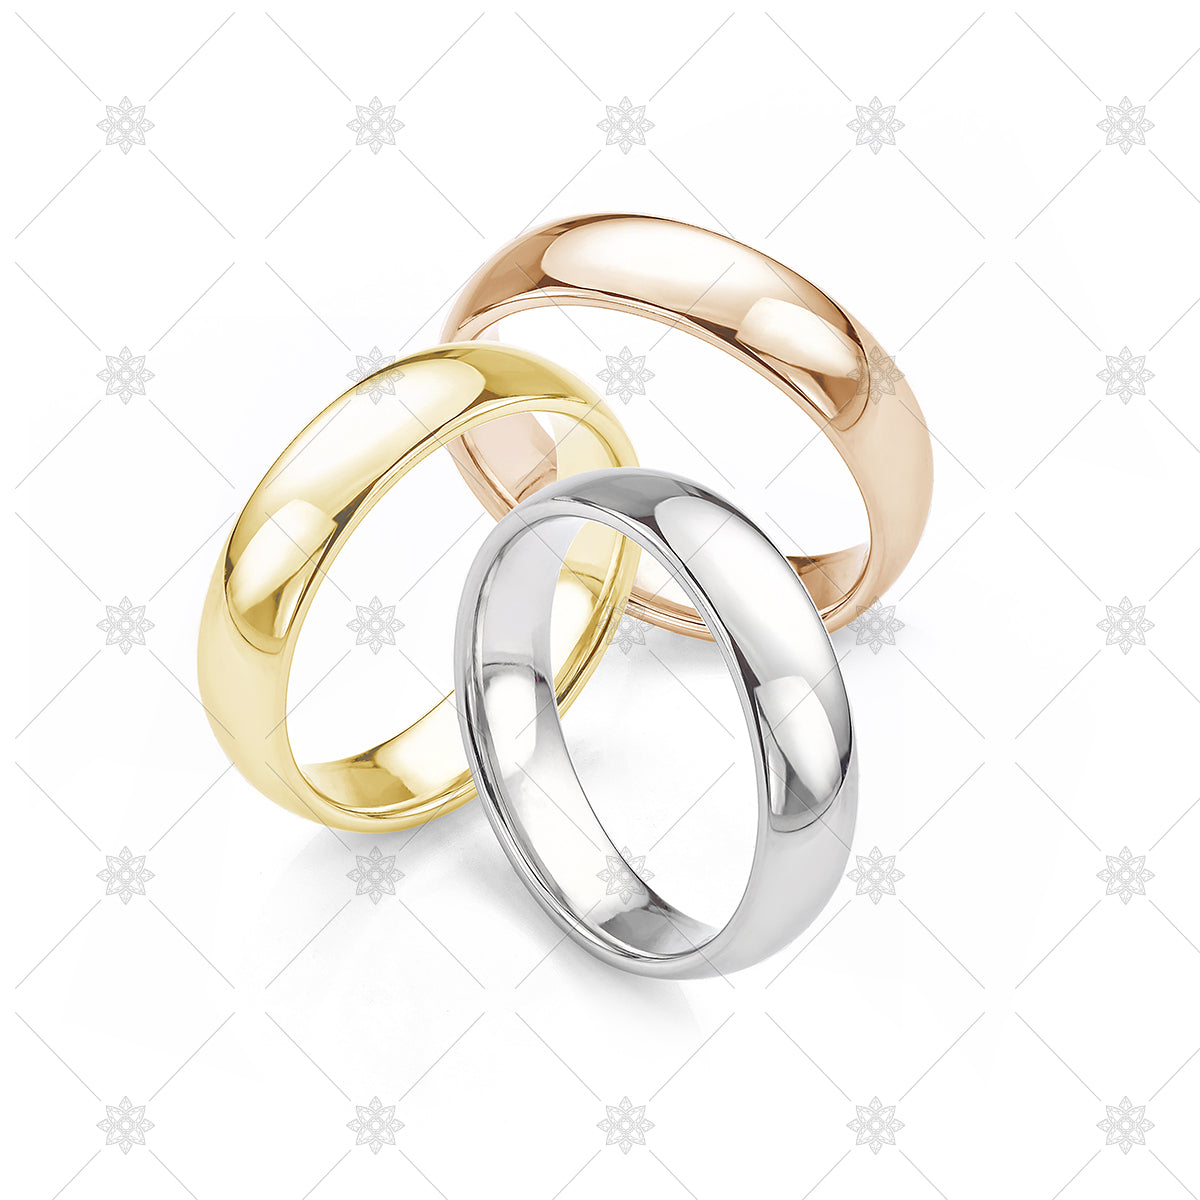 Trio of wedding rings